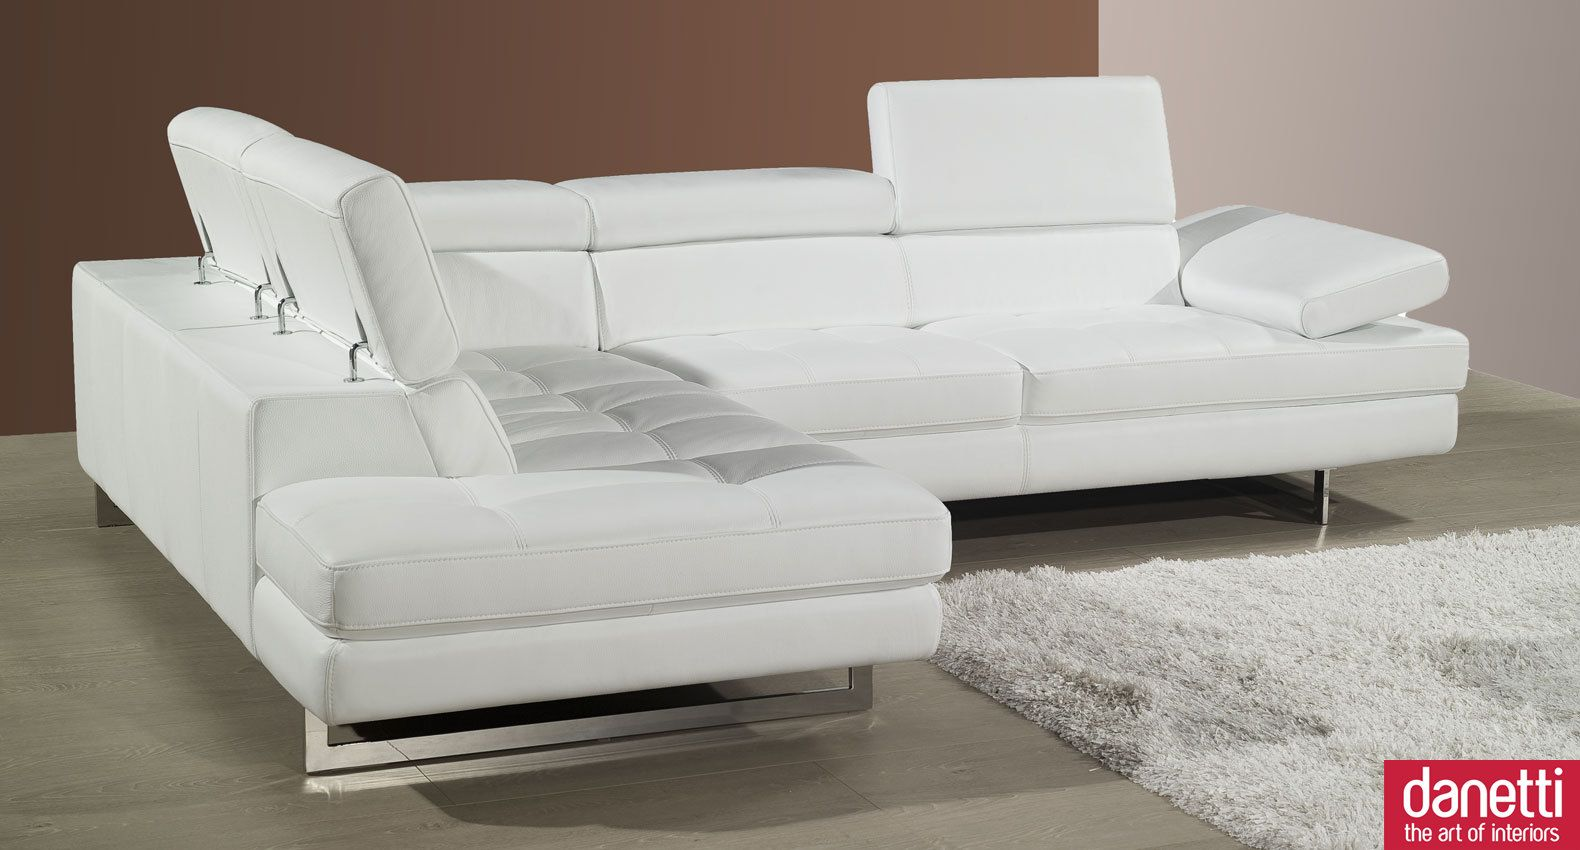 modern white leather couchimage gallery  image gallery  idi  - modern white leather couchimage gallery  image gallery